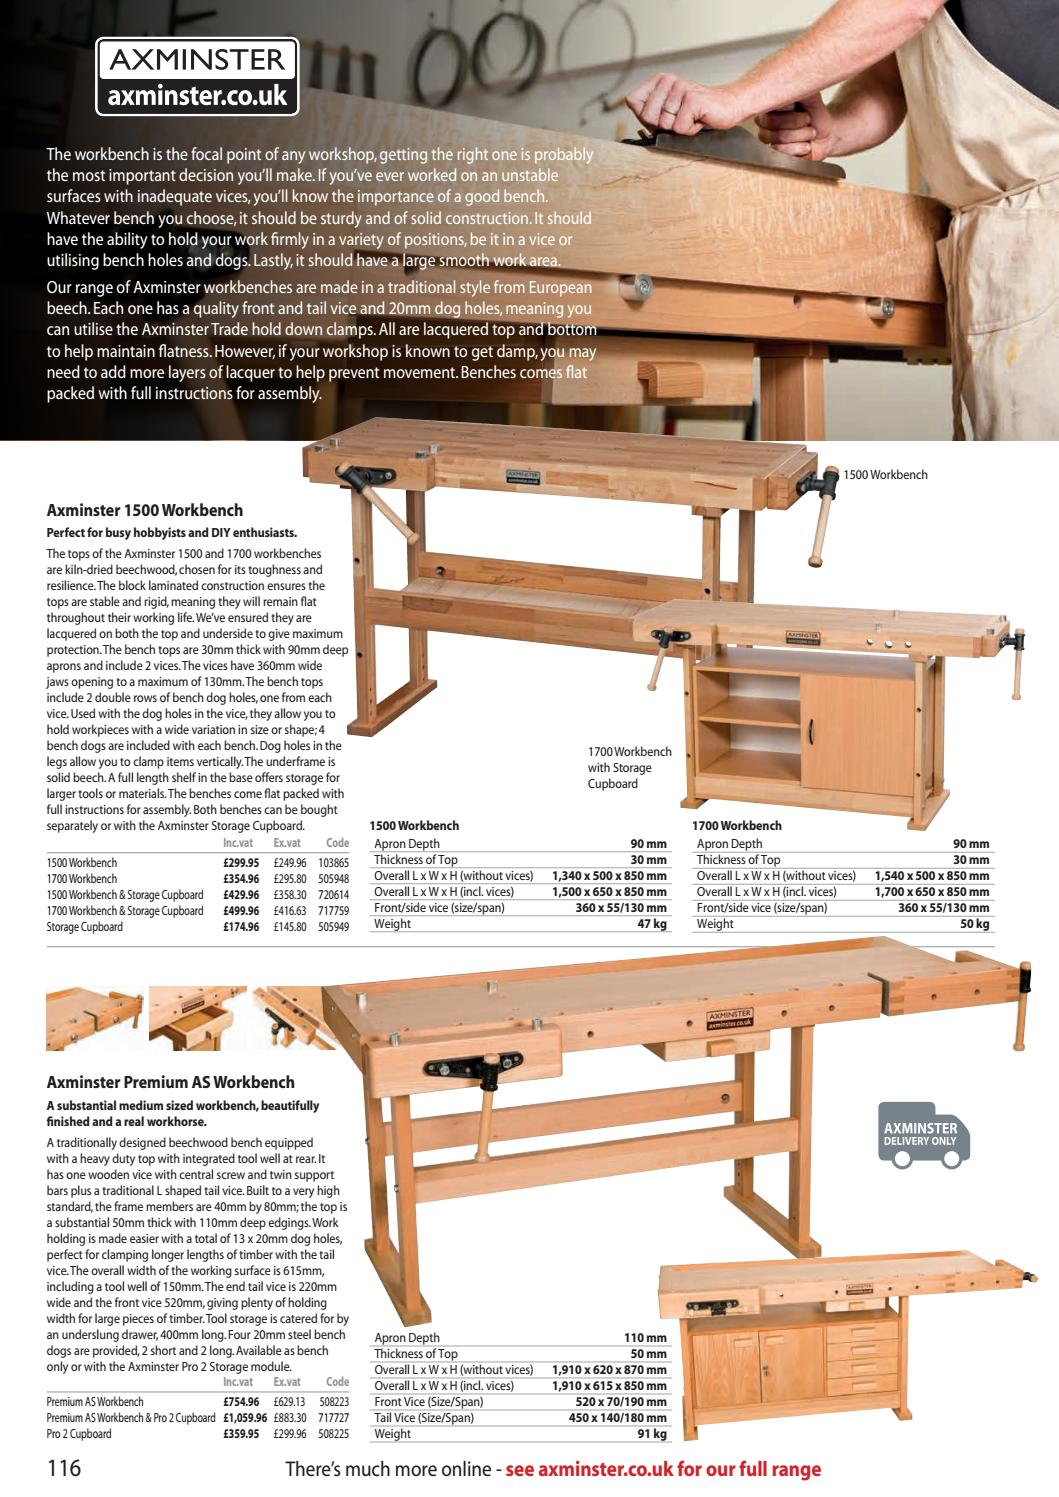 Phenomenal Axminster Tools Machinery Catalogue 2018 19 By Axminster Machost Co Dining Chair Design Ideas Machostcouk